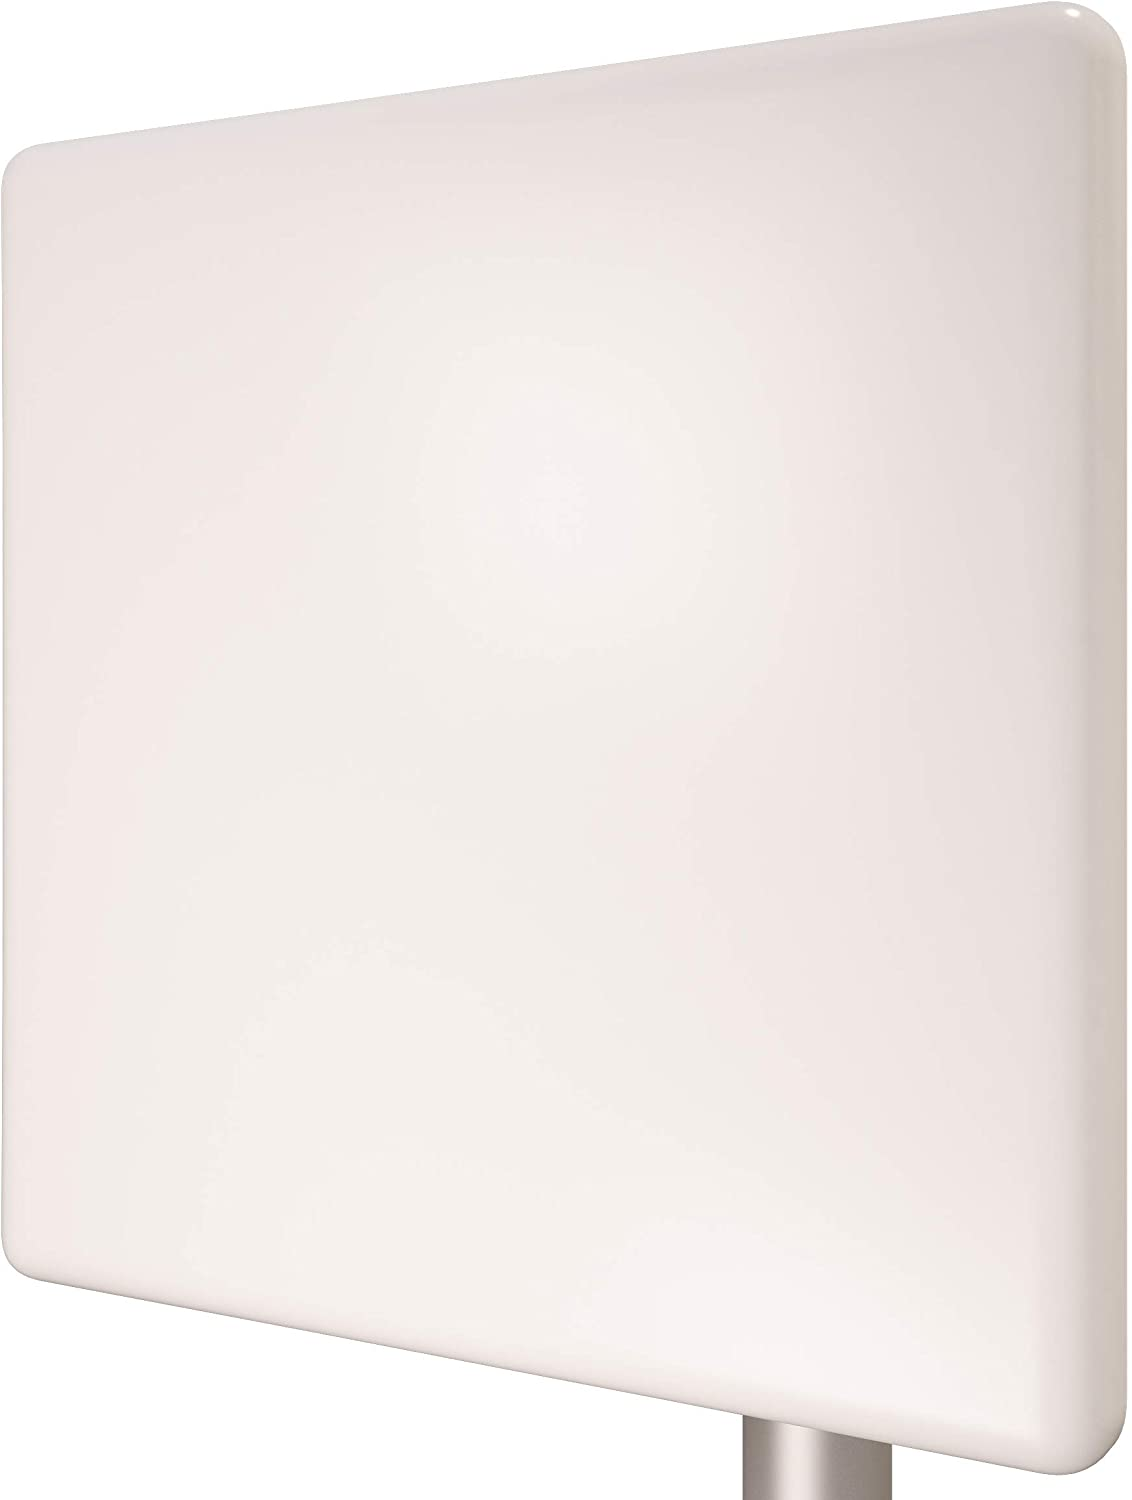 Tupavco TP511 Panel Antenna 2.4GHz WiFi 20dBi Wireless Outdoor 18° Directional N (f) High Gain Range